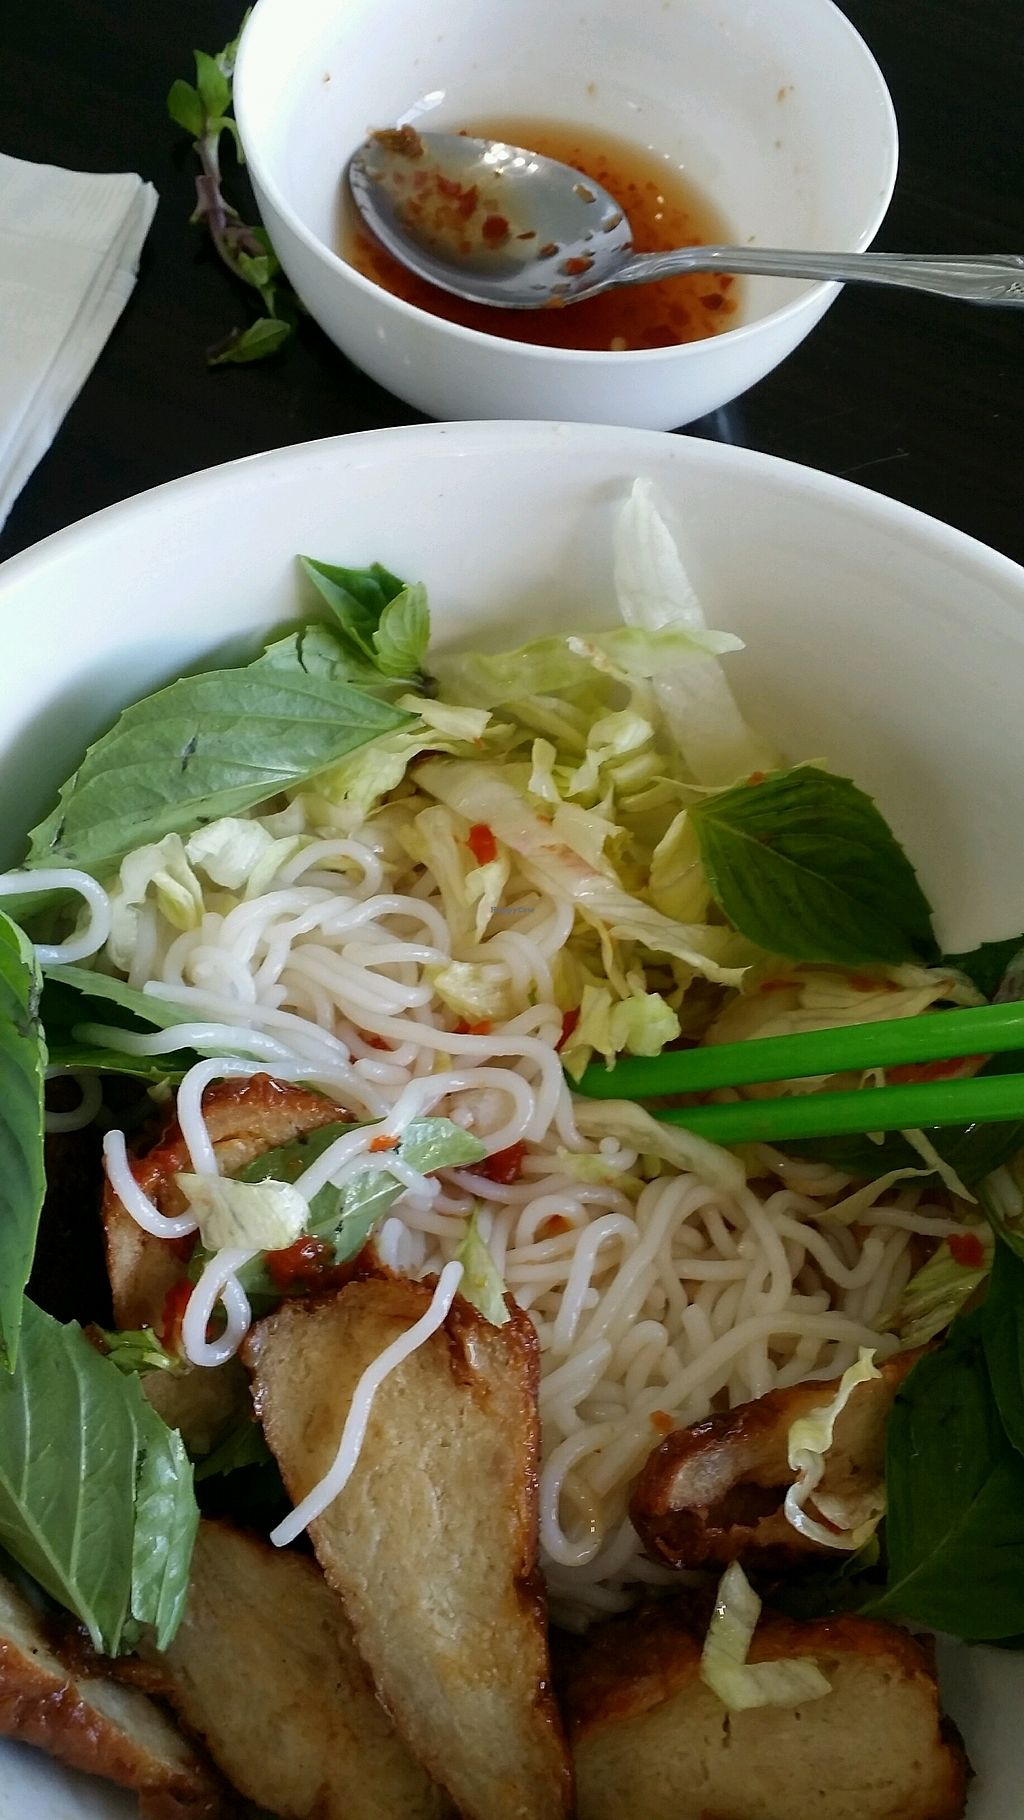 """Photo of Veggie Garden  by <a href=""""/members/profile/maltinej"""">maltinej</a> <br/>noodles with seasoned soy meat <br/> September 16, 2017  - <a href='/contact/abuse/image/28560/305175'>Report</a>"""